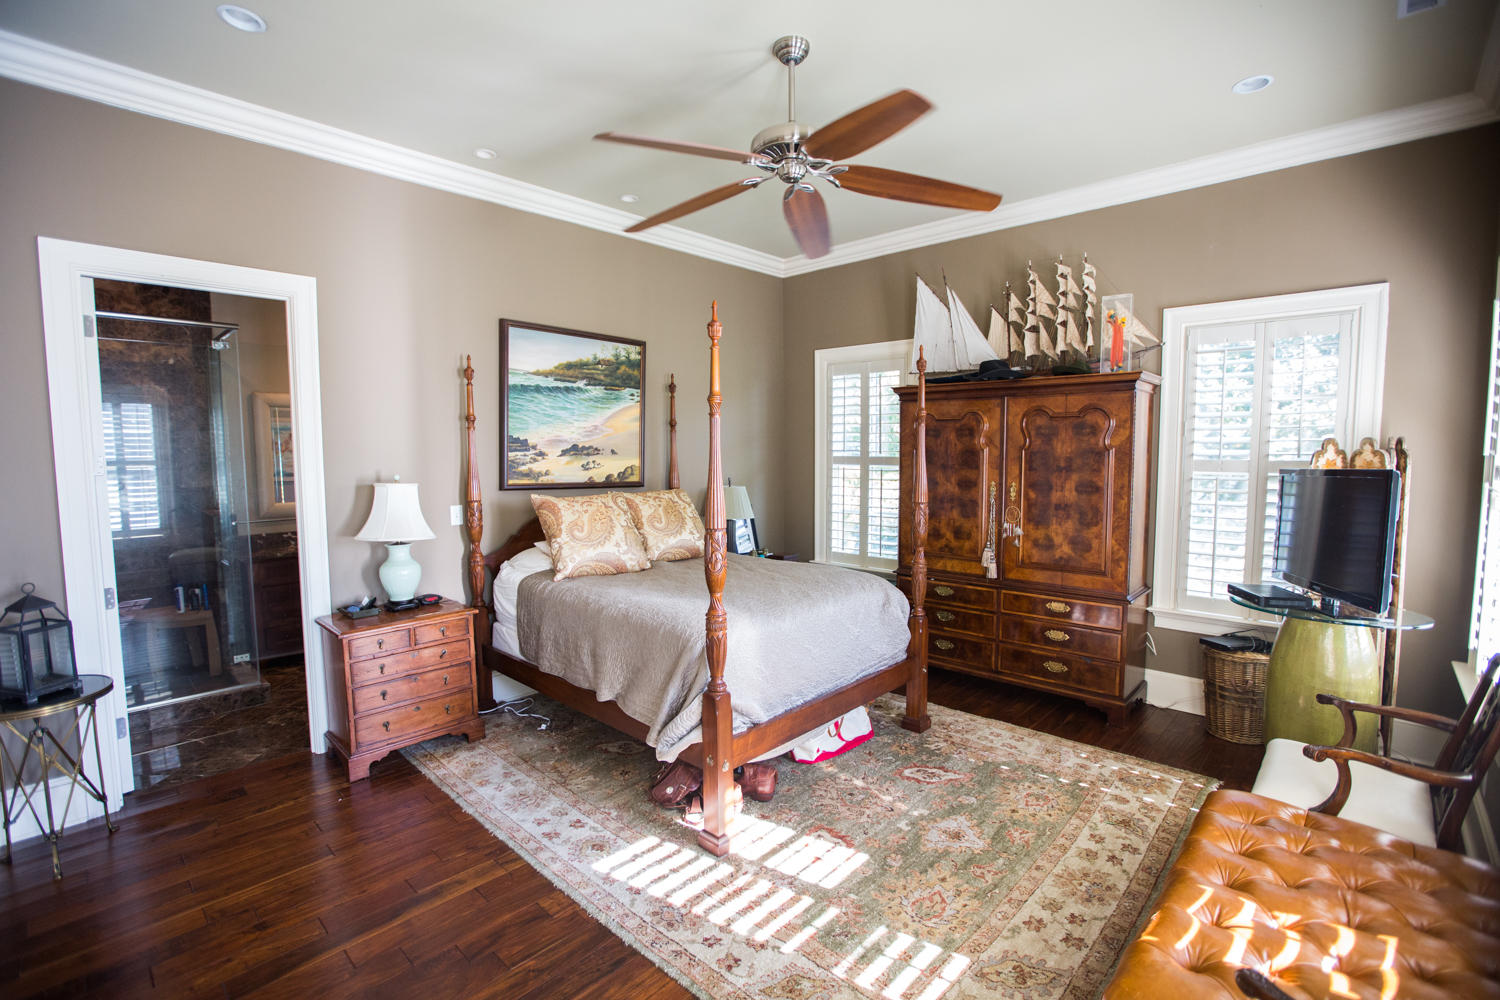 Edgewater Park Homes For Sale - 120 Edgewater, Charleston, SC - 33